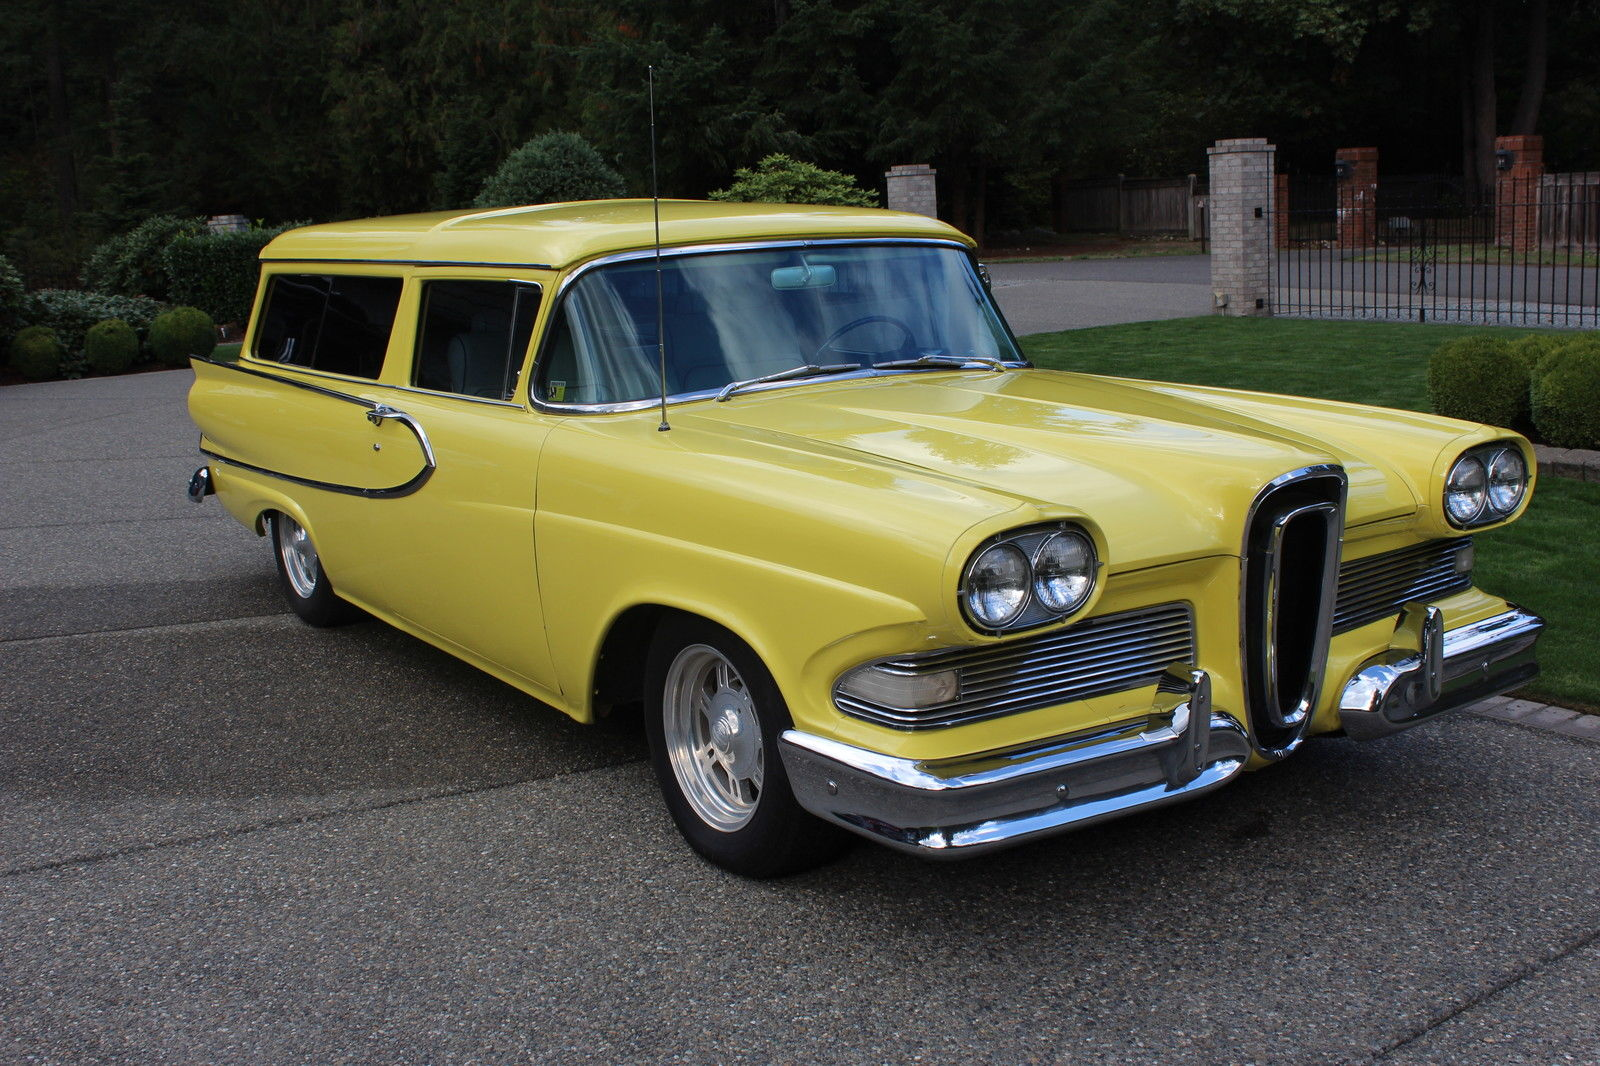 1958 Ford Edsel Roundup 2 Door Station Wagon For Sale